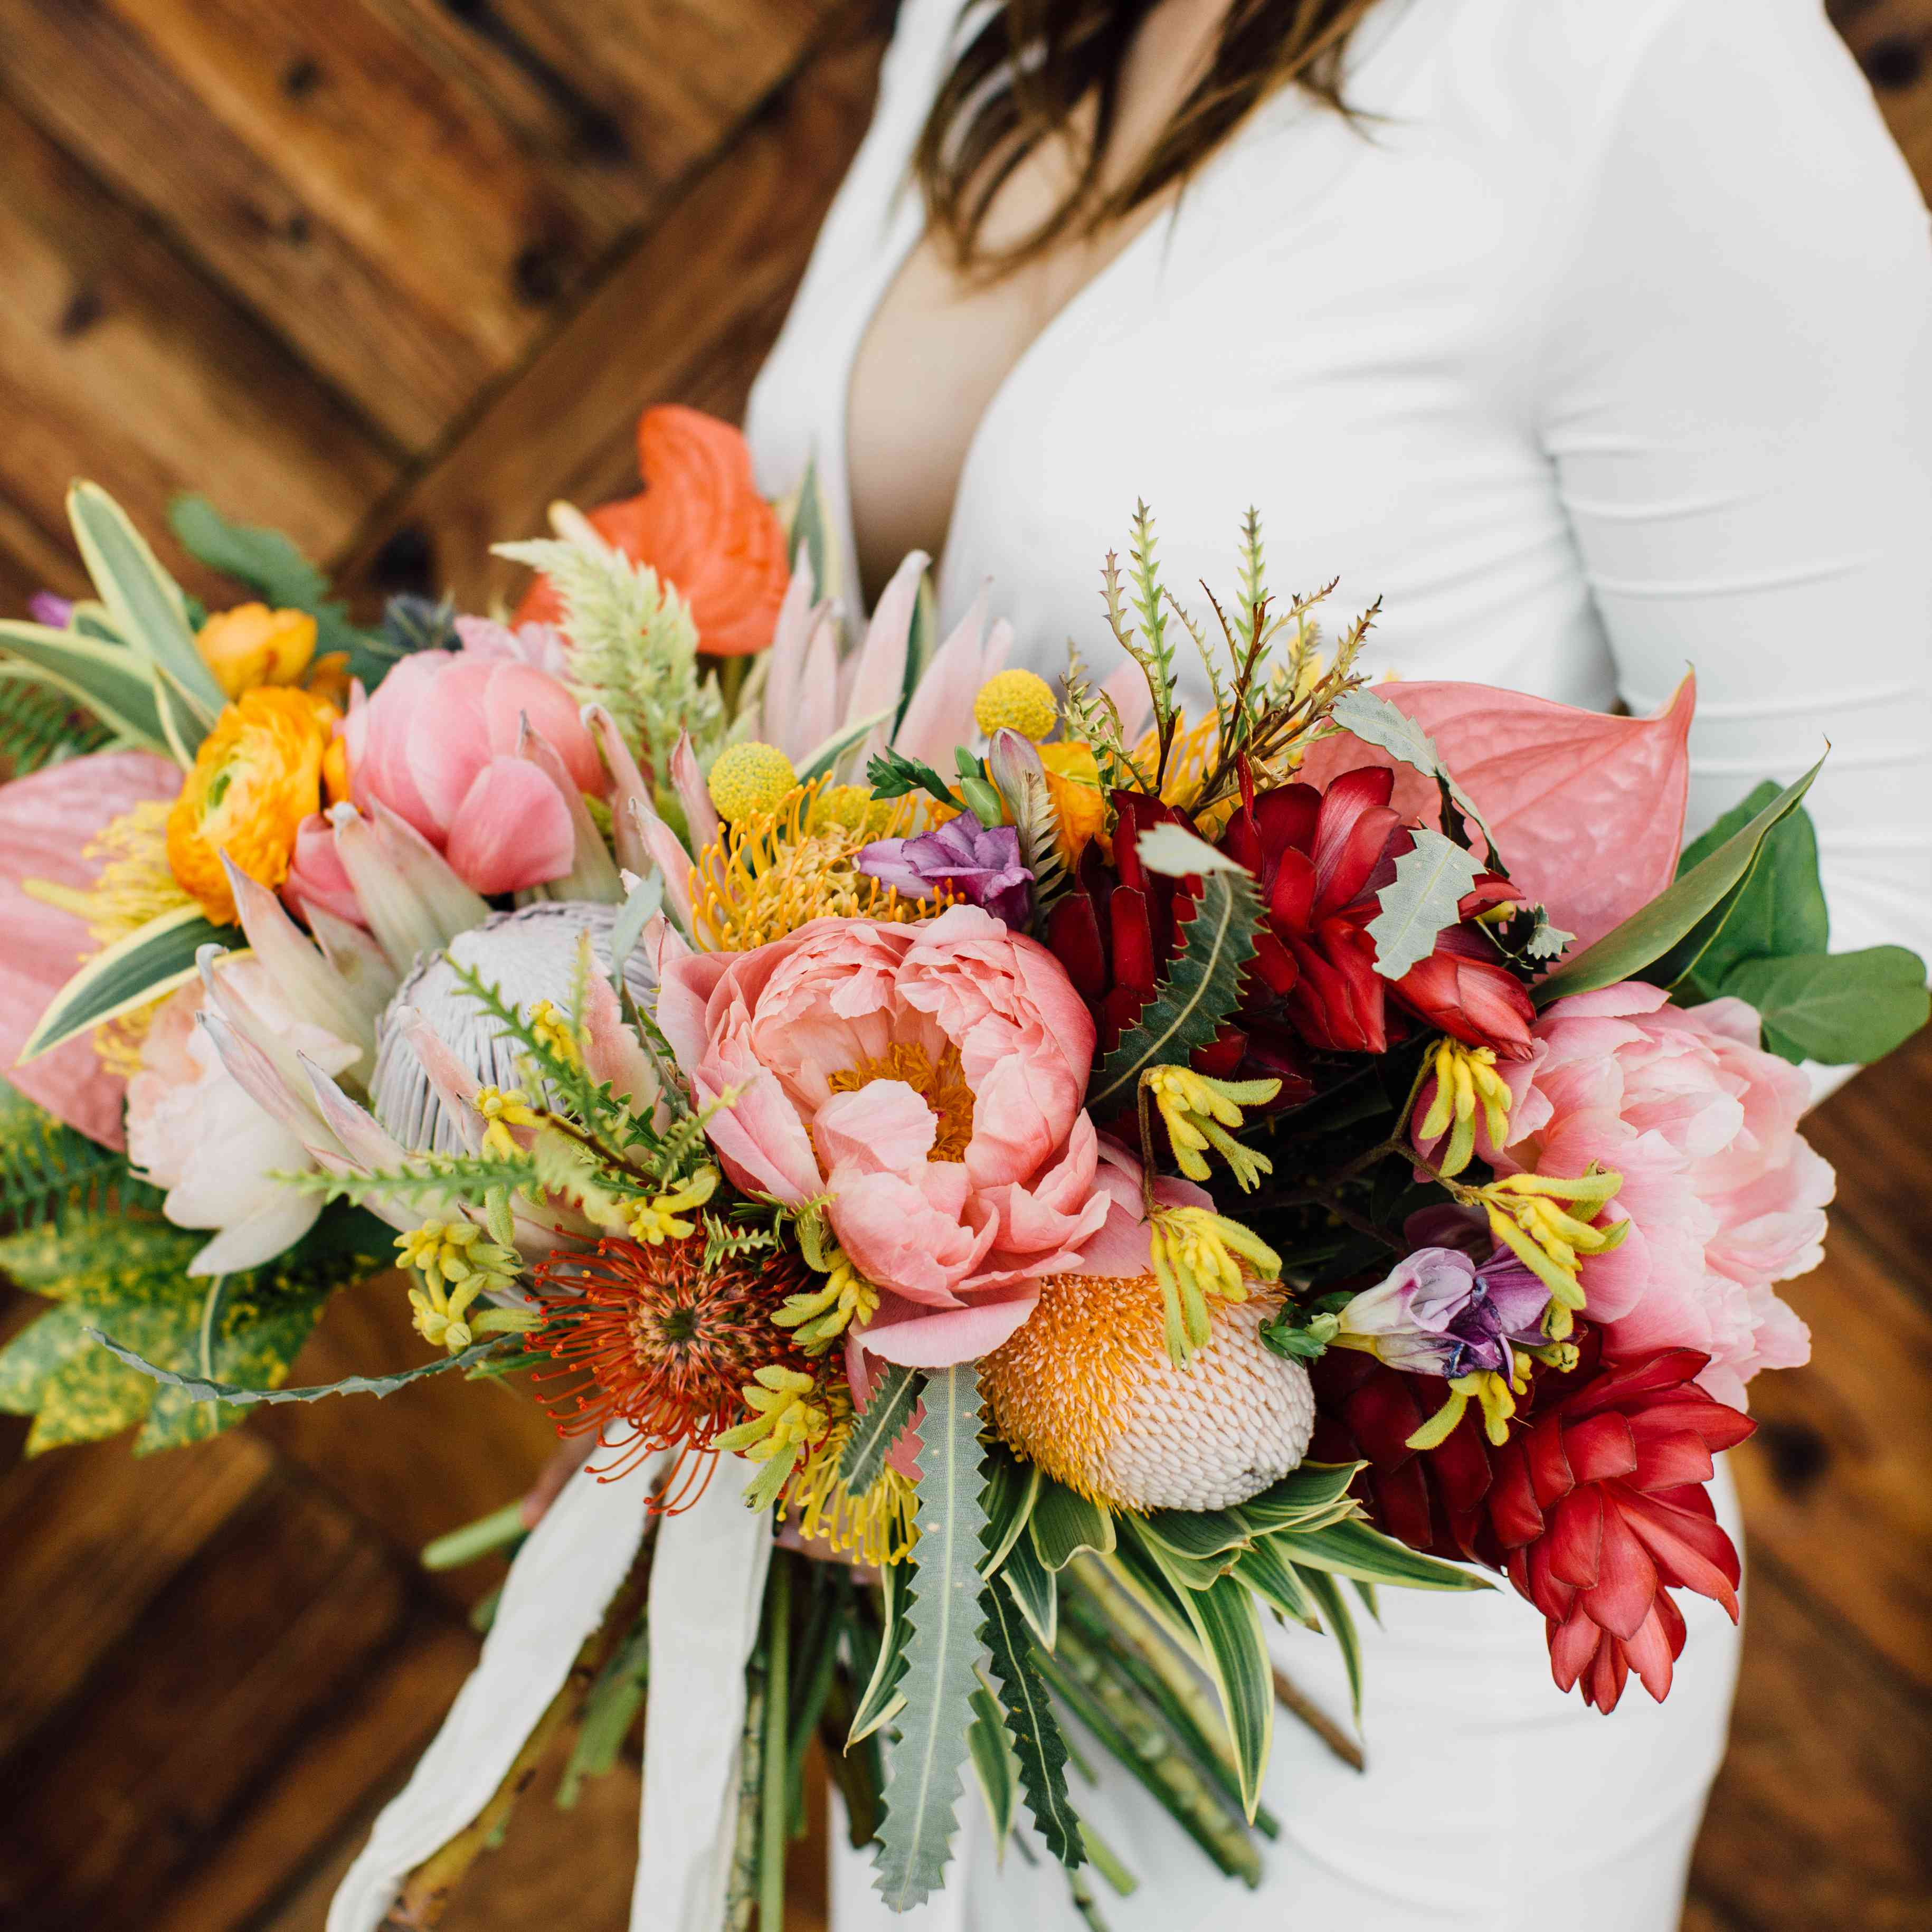 A playful bouquet brimming with all the colors under the sun